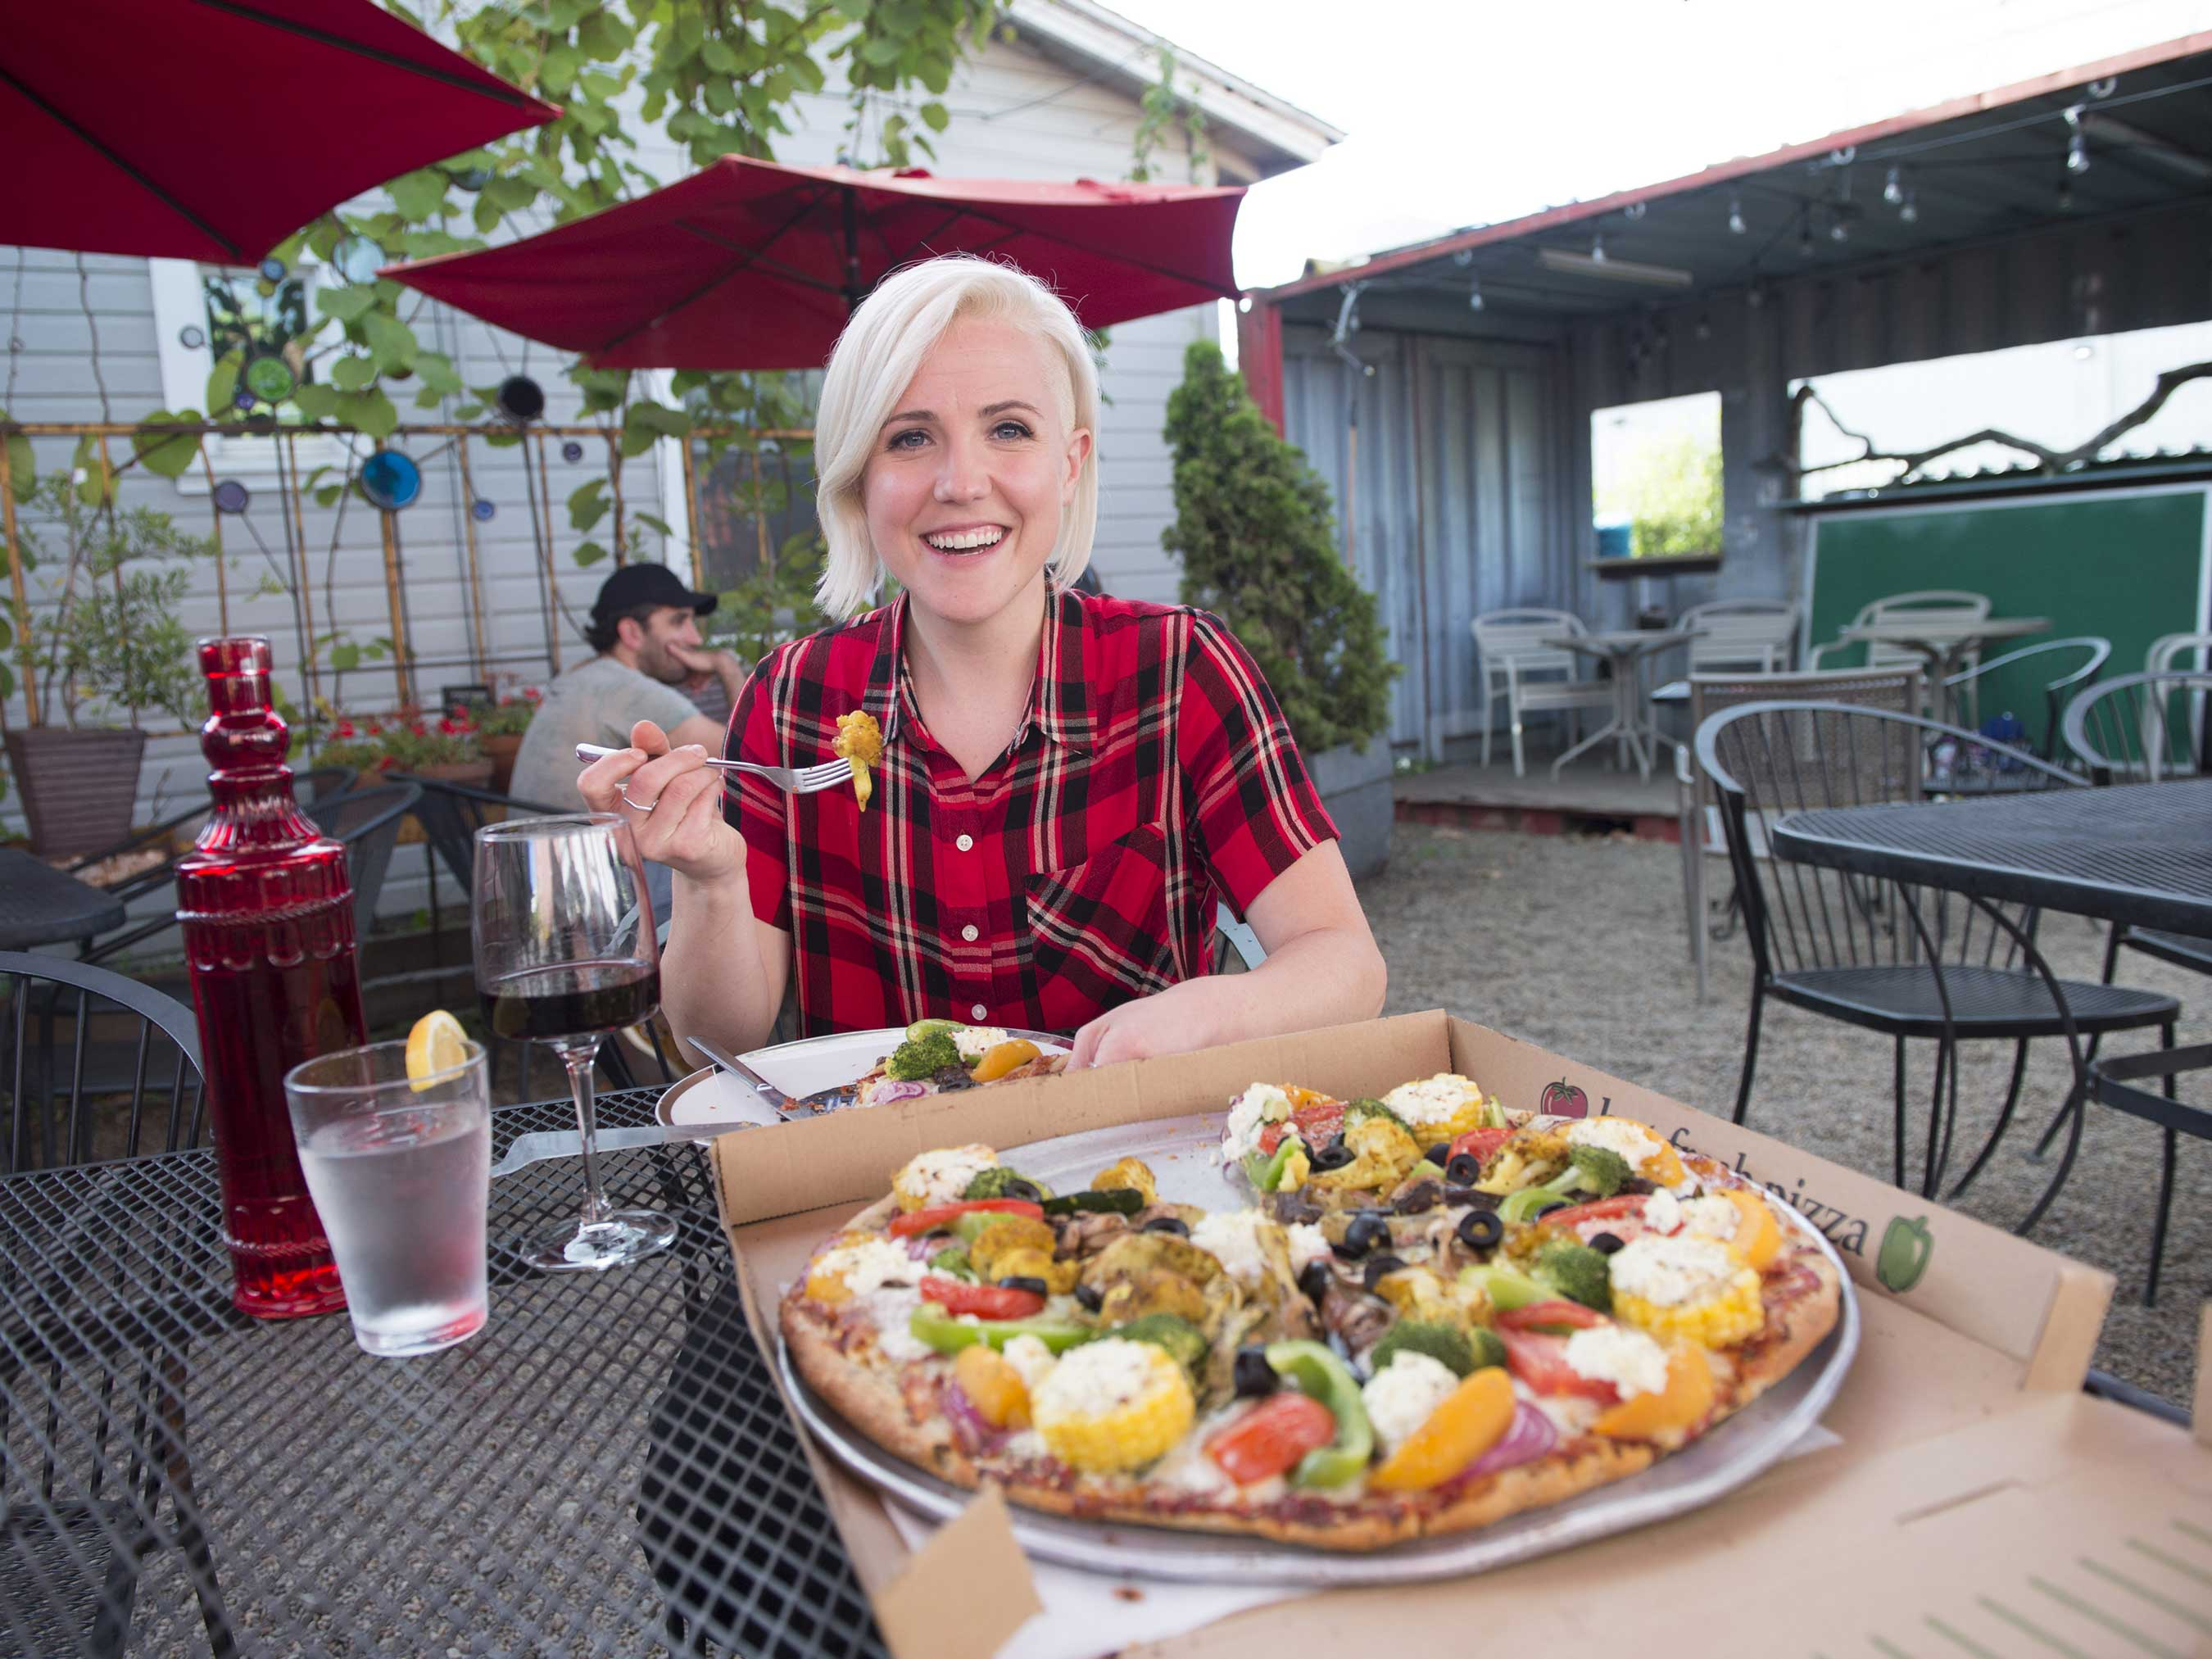 Hannah Hart at Pizza Research Institute in Eugene, Oregon, on Food Network's I Hart Food